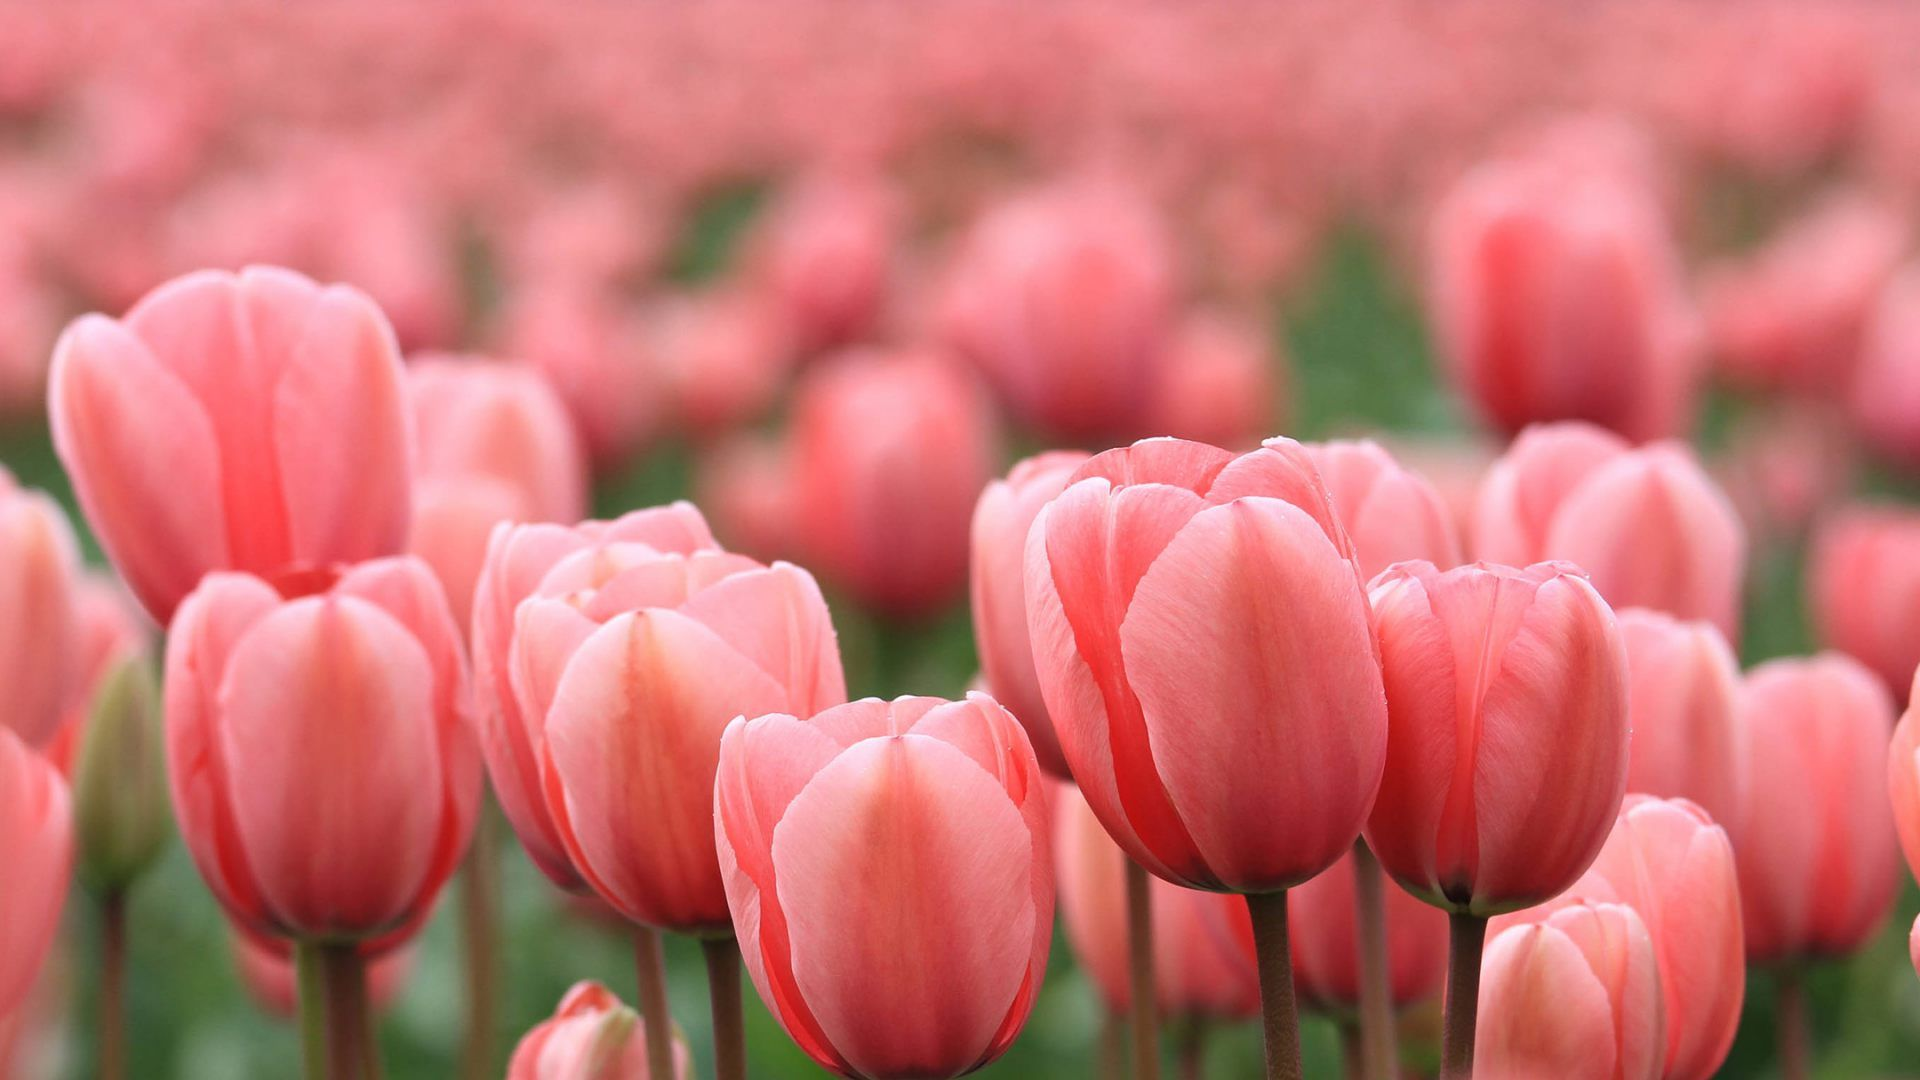 Pink tulips wallpapers wallpaper tulips images hd wallpapers pink tulips wallpapers wallpaper tulips images thecheapjerseys Image collections